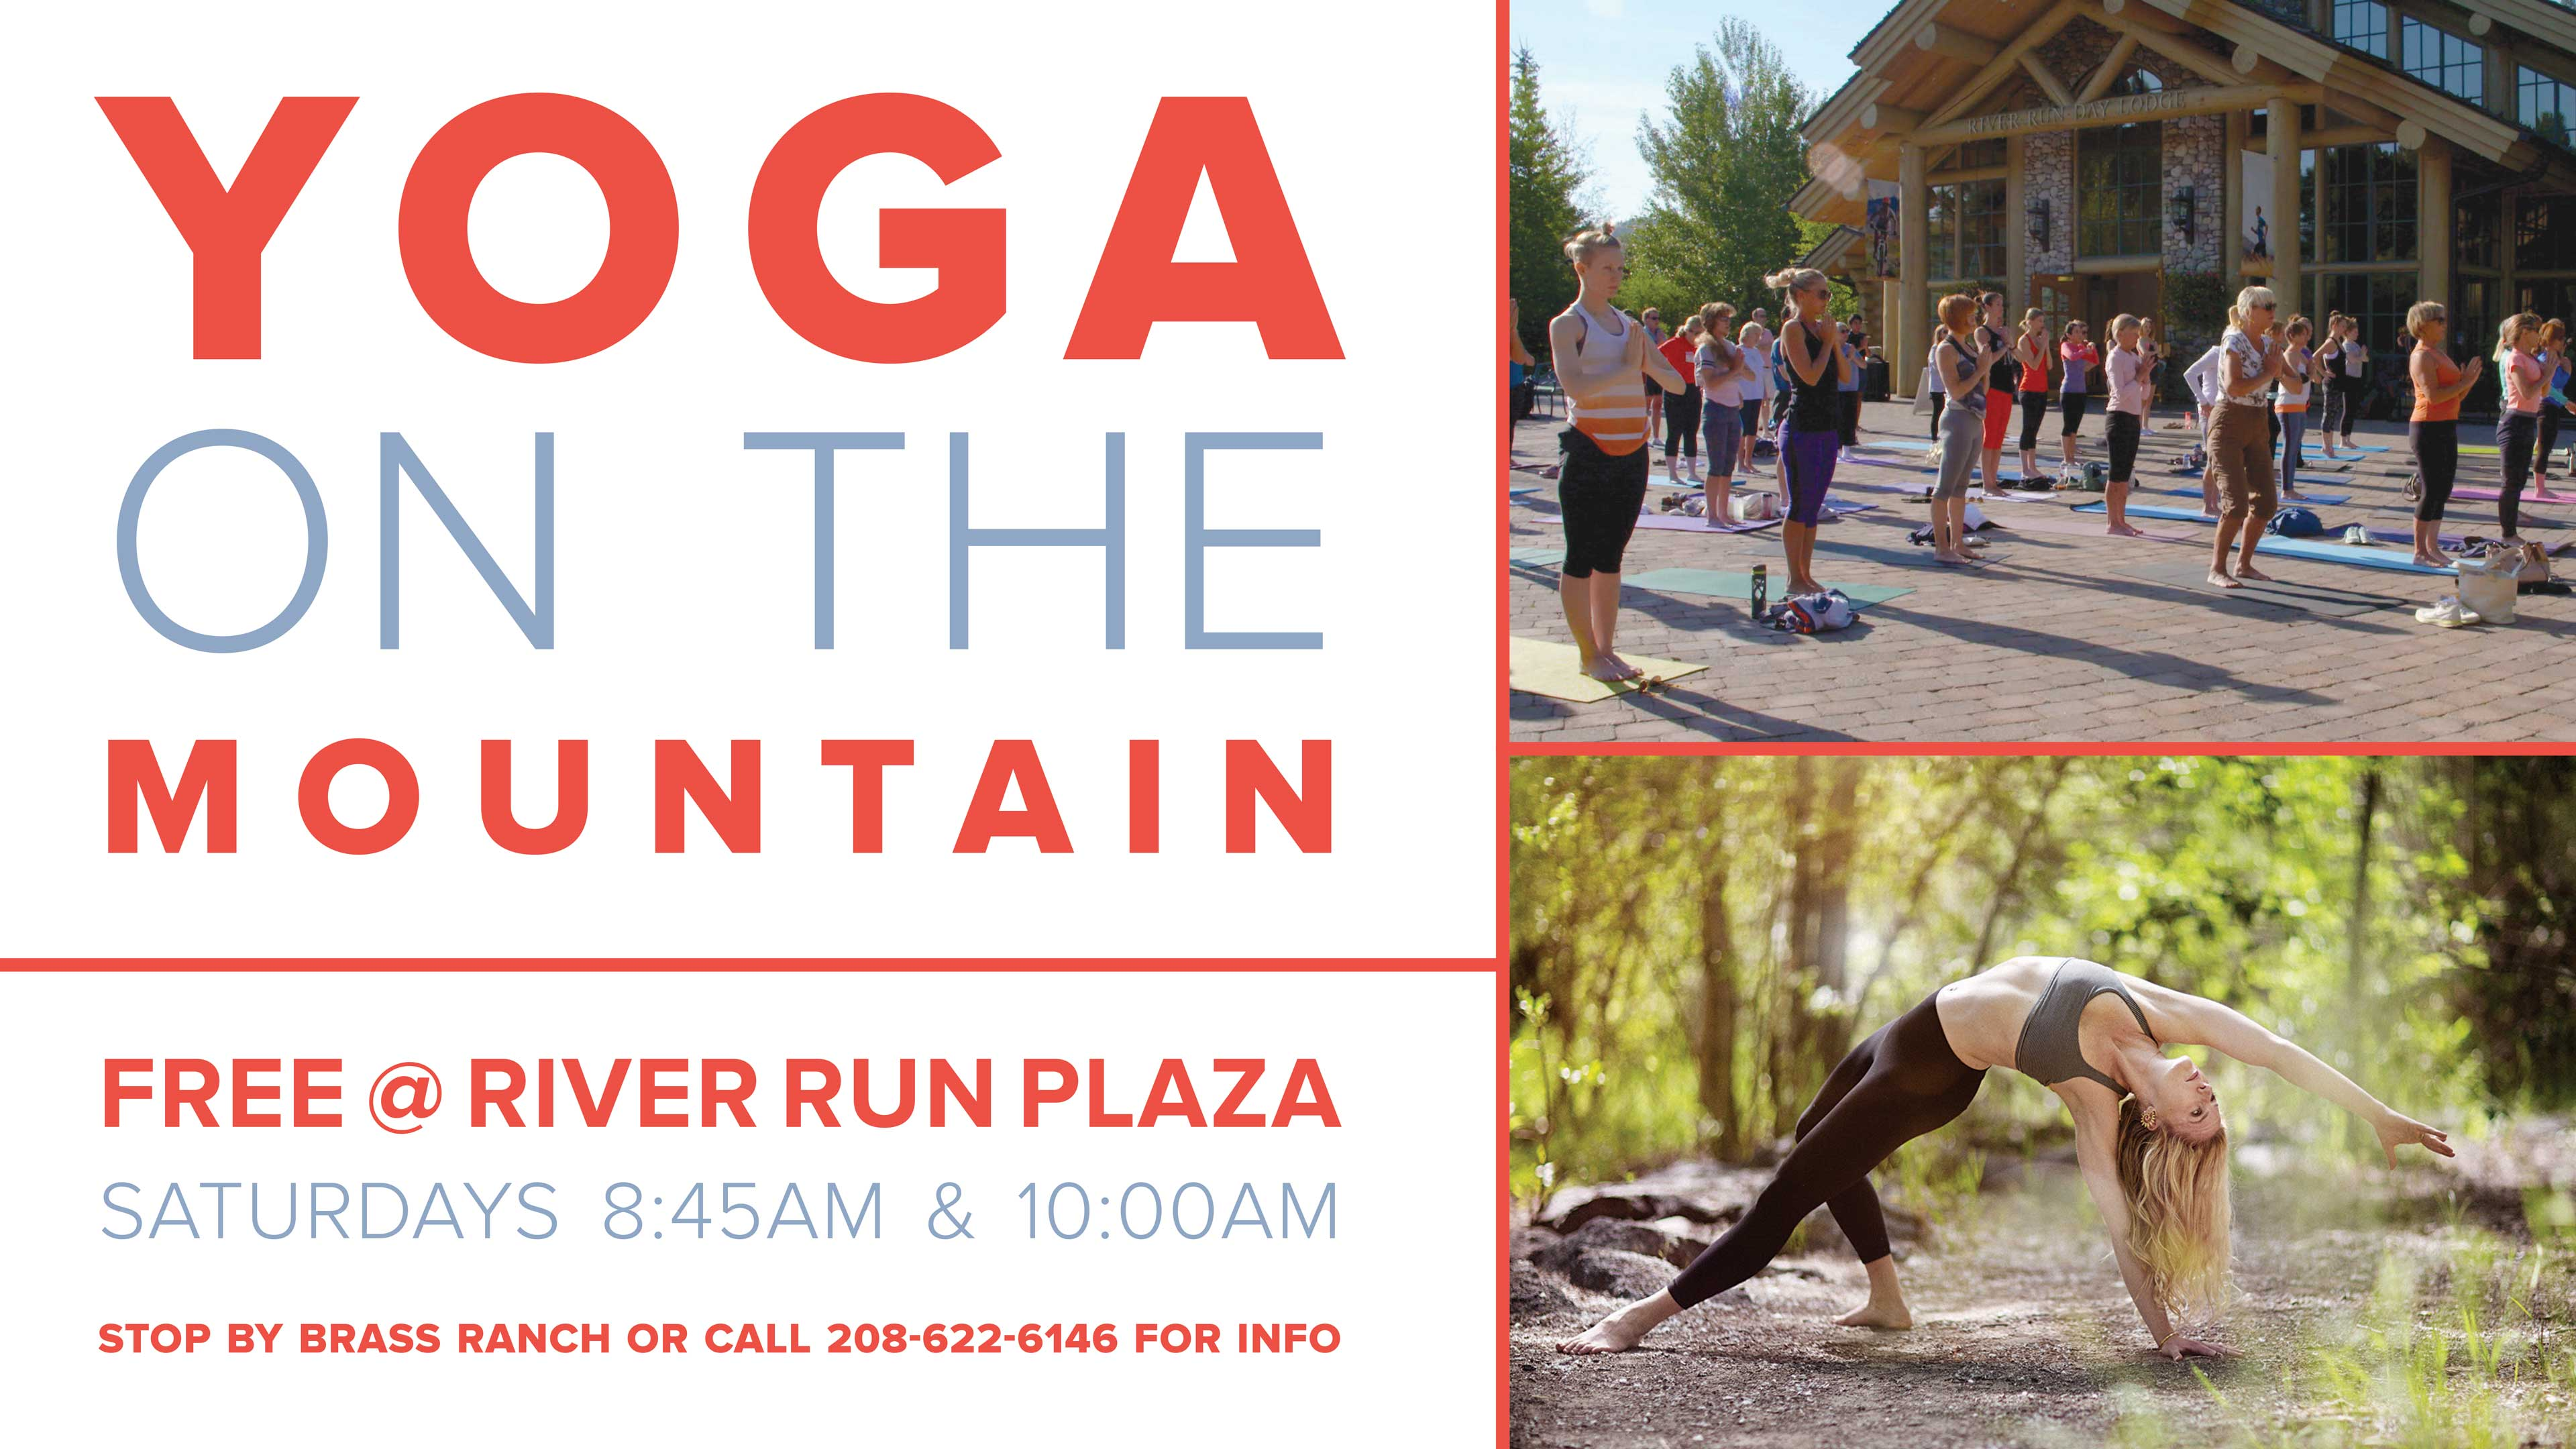 Yoga in the Plaza @ River Run Lodge